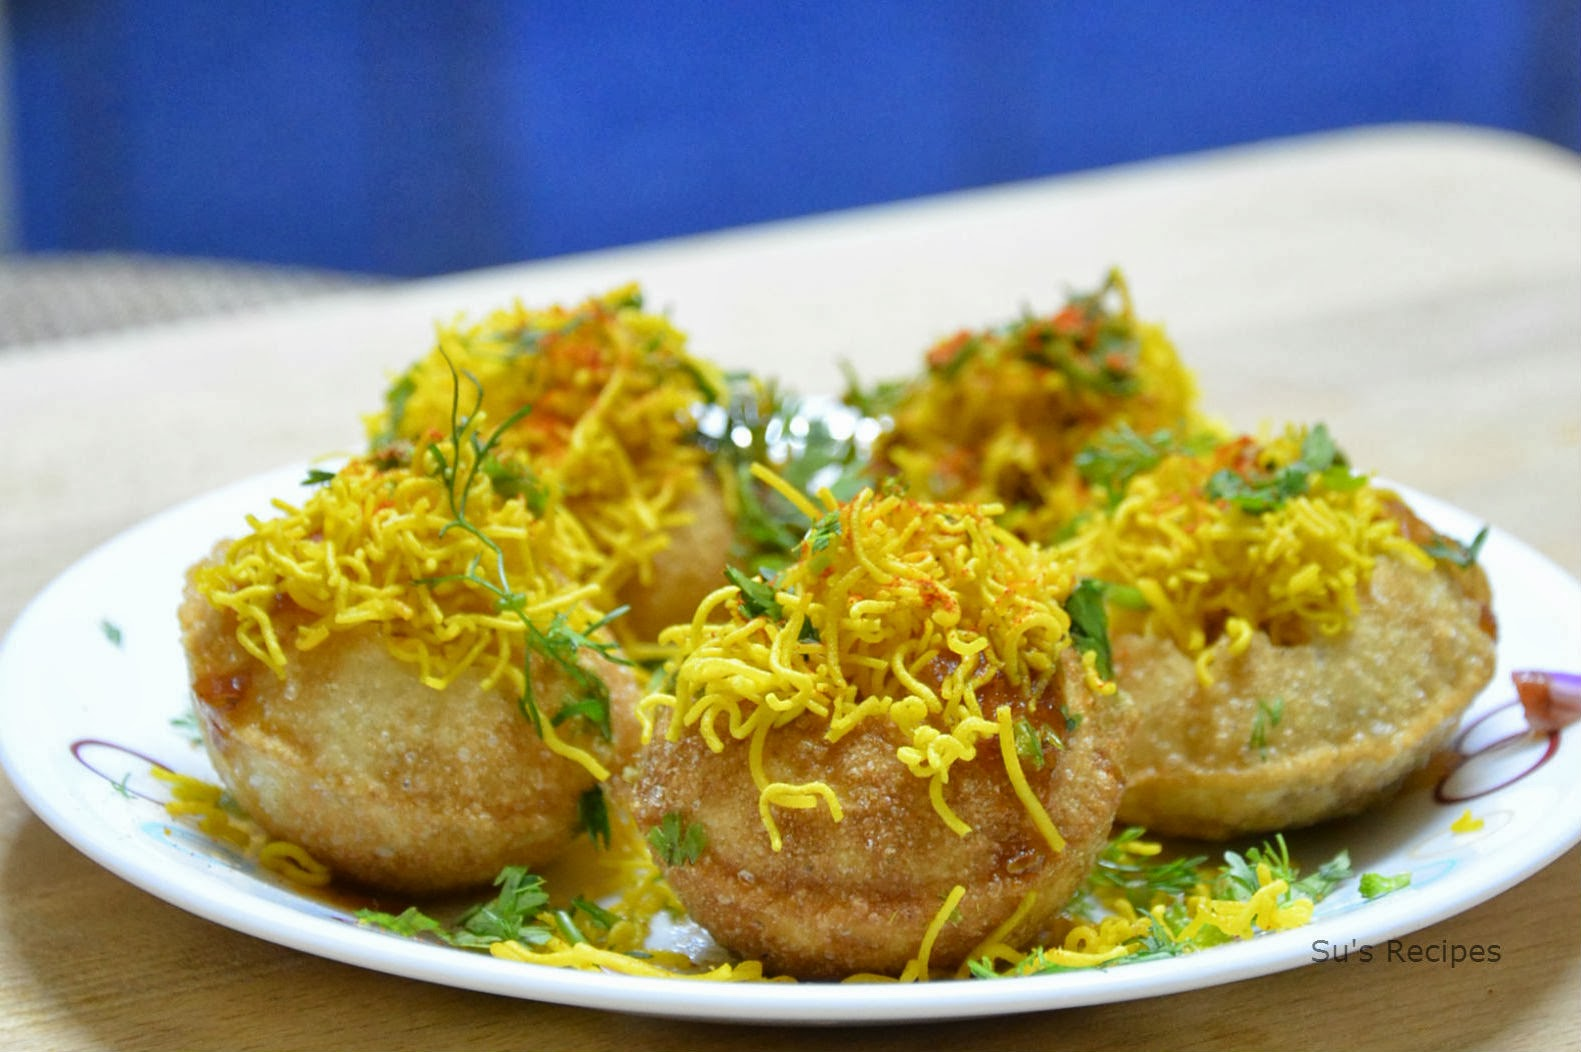 sev puri, sev puri chaat, indian street food, indian chaats, chaats, sev